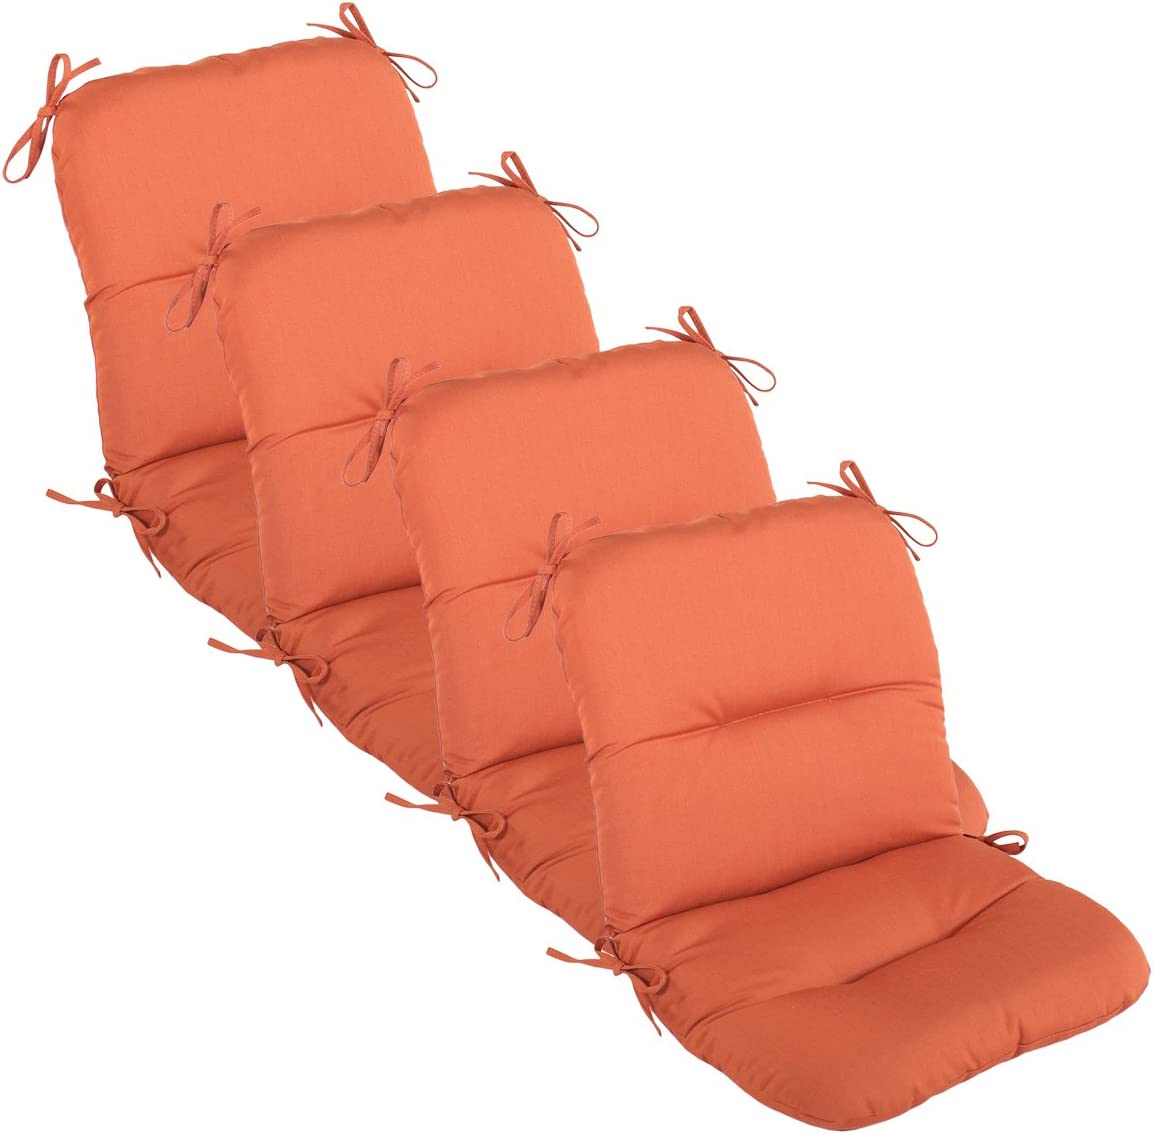 Comfort Classics Inc. Set of 4 Outdoor Chair Cushions 20 x 36 x 3 H-19 in Sunbrella Fabric Broadcloth Flame Made in USA